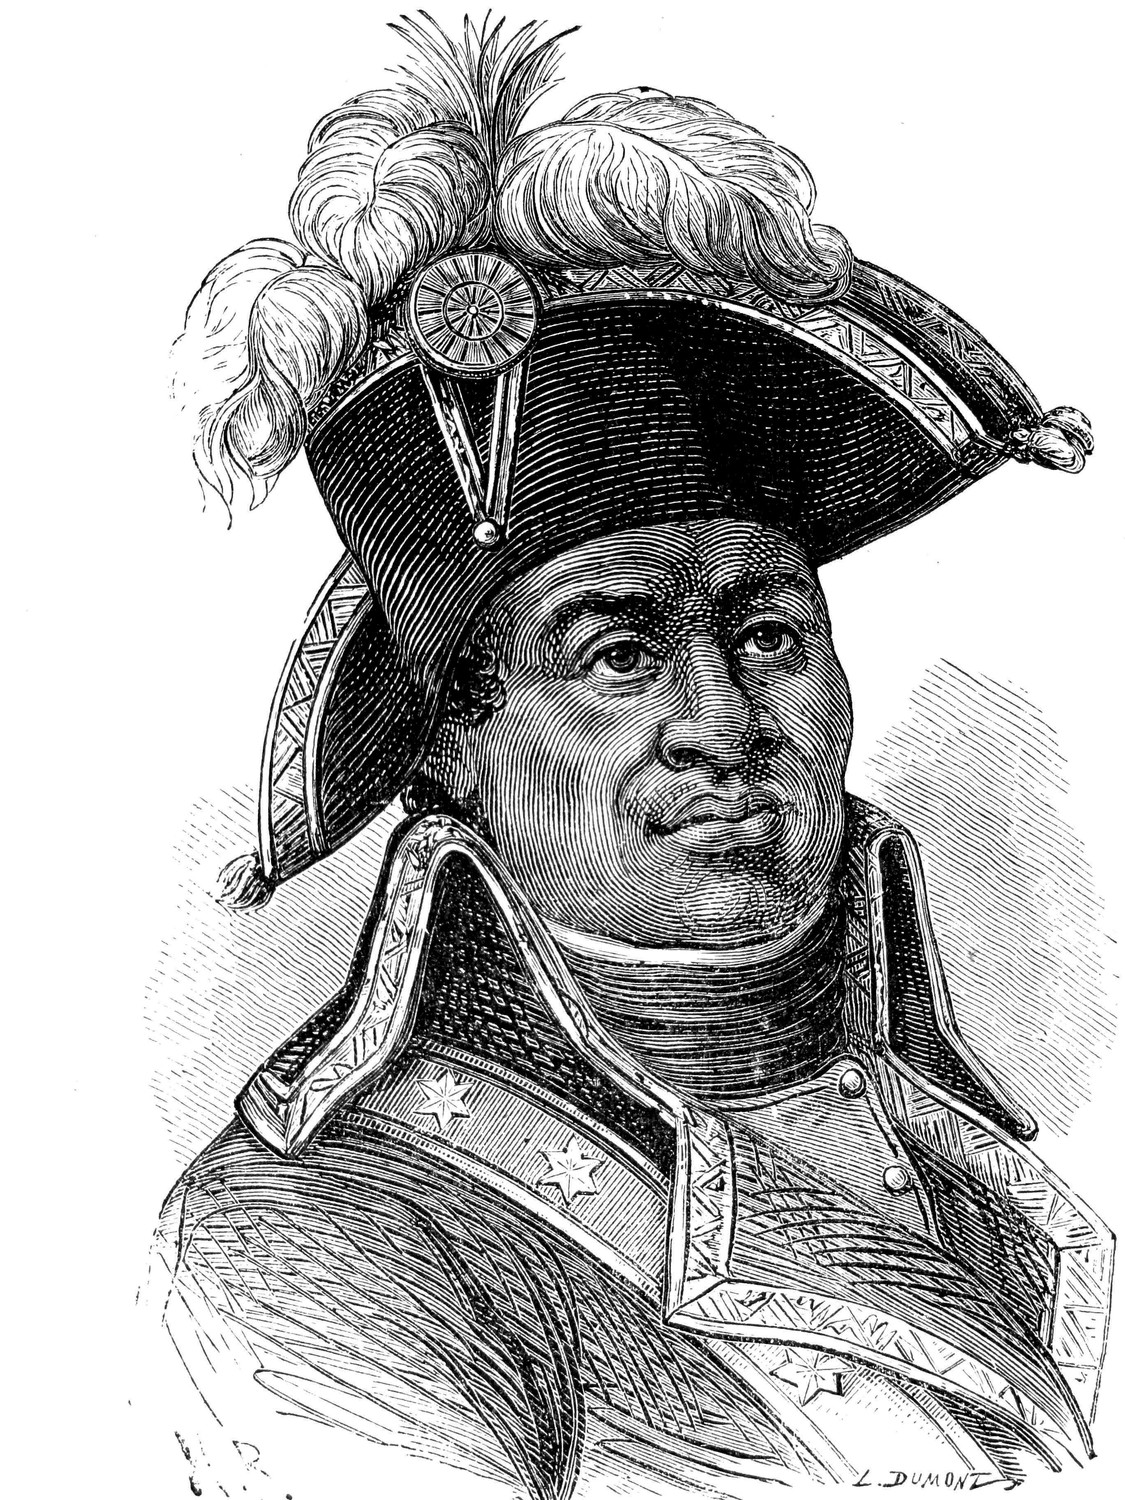 Tousaint Louverture, sometimes called teh Haitian George Washington, was one of the leaders of the Haitian Revolution in the late 1700s